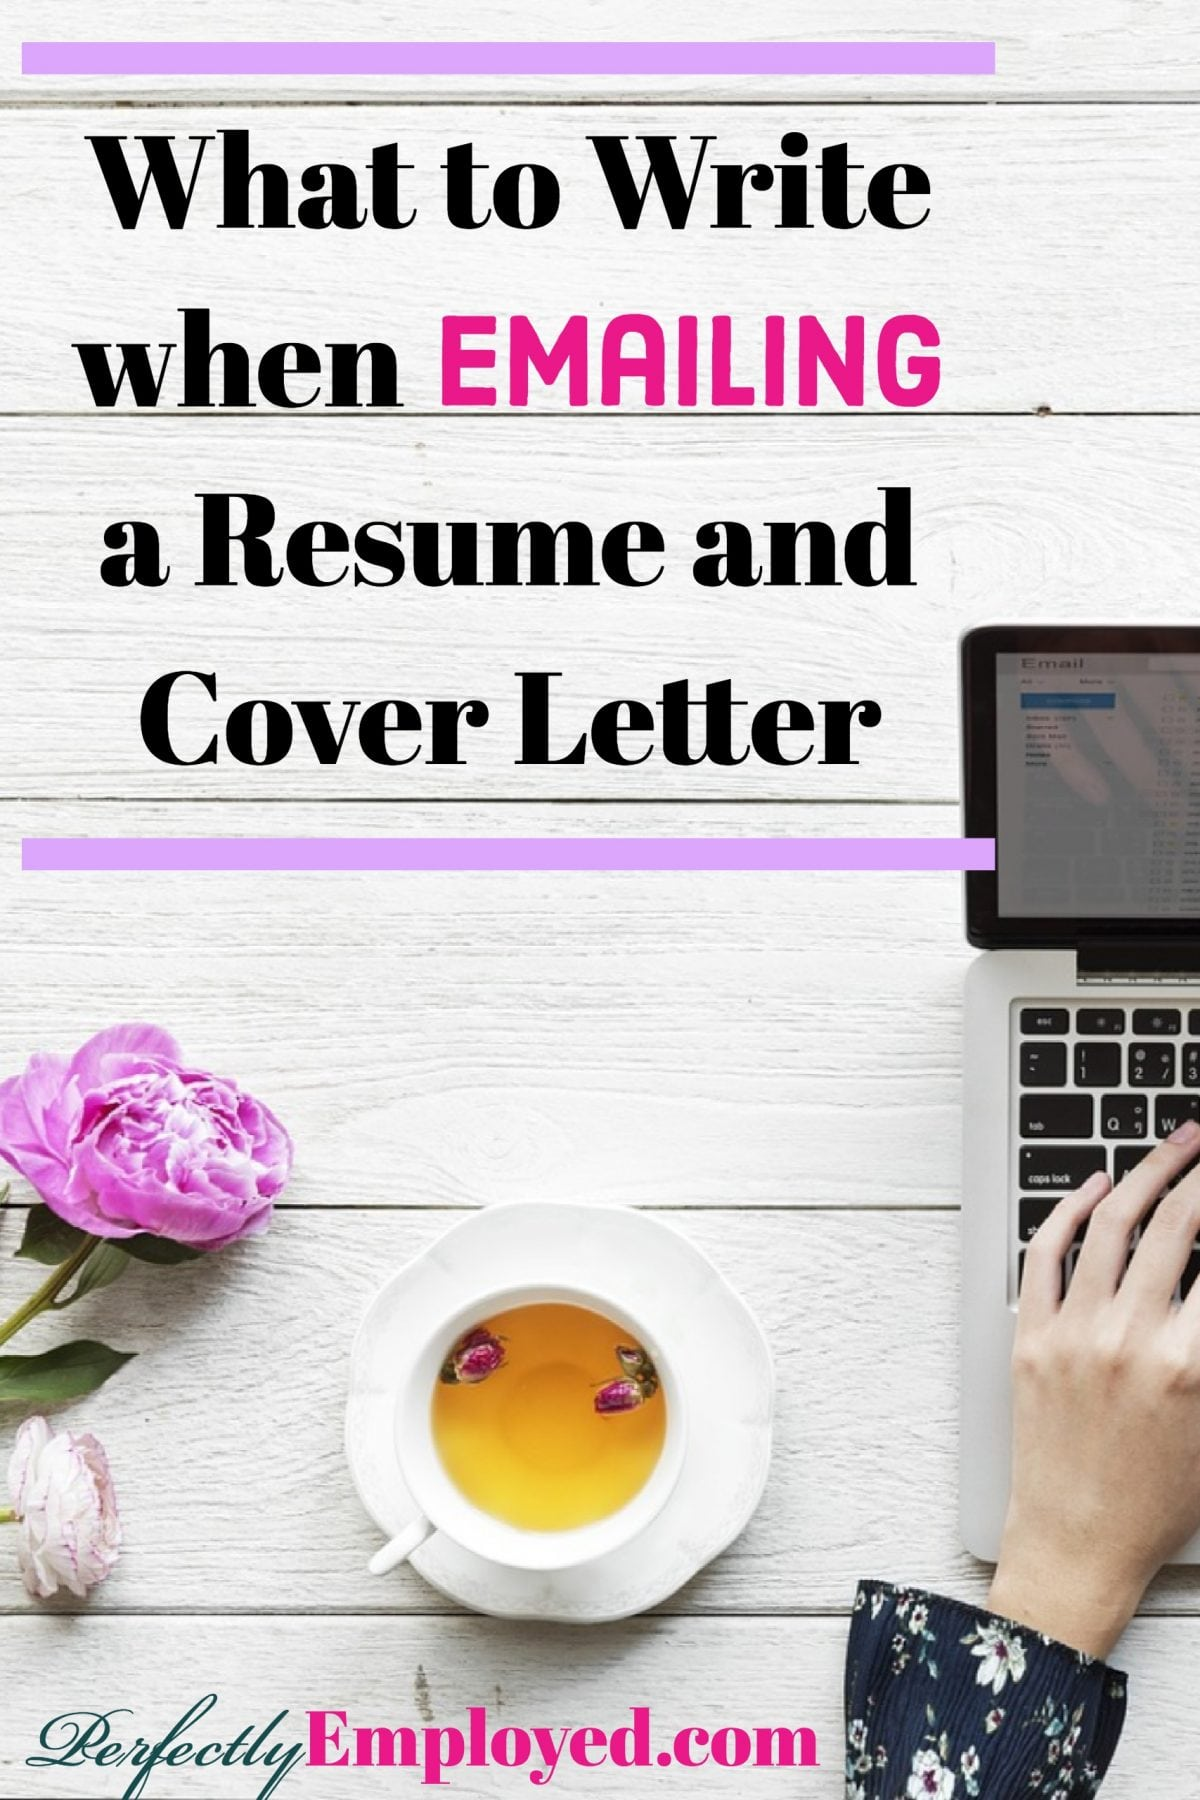 What to Write when Emailing a Resume and Cover Letter